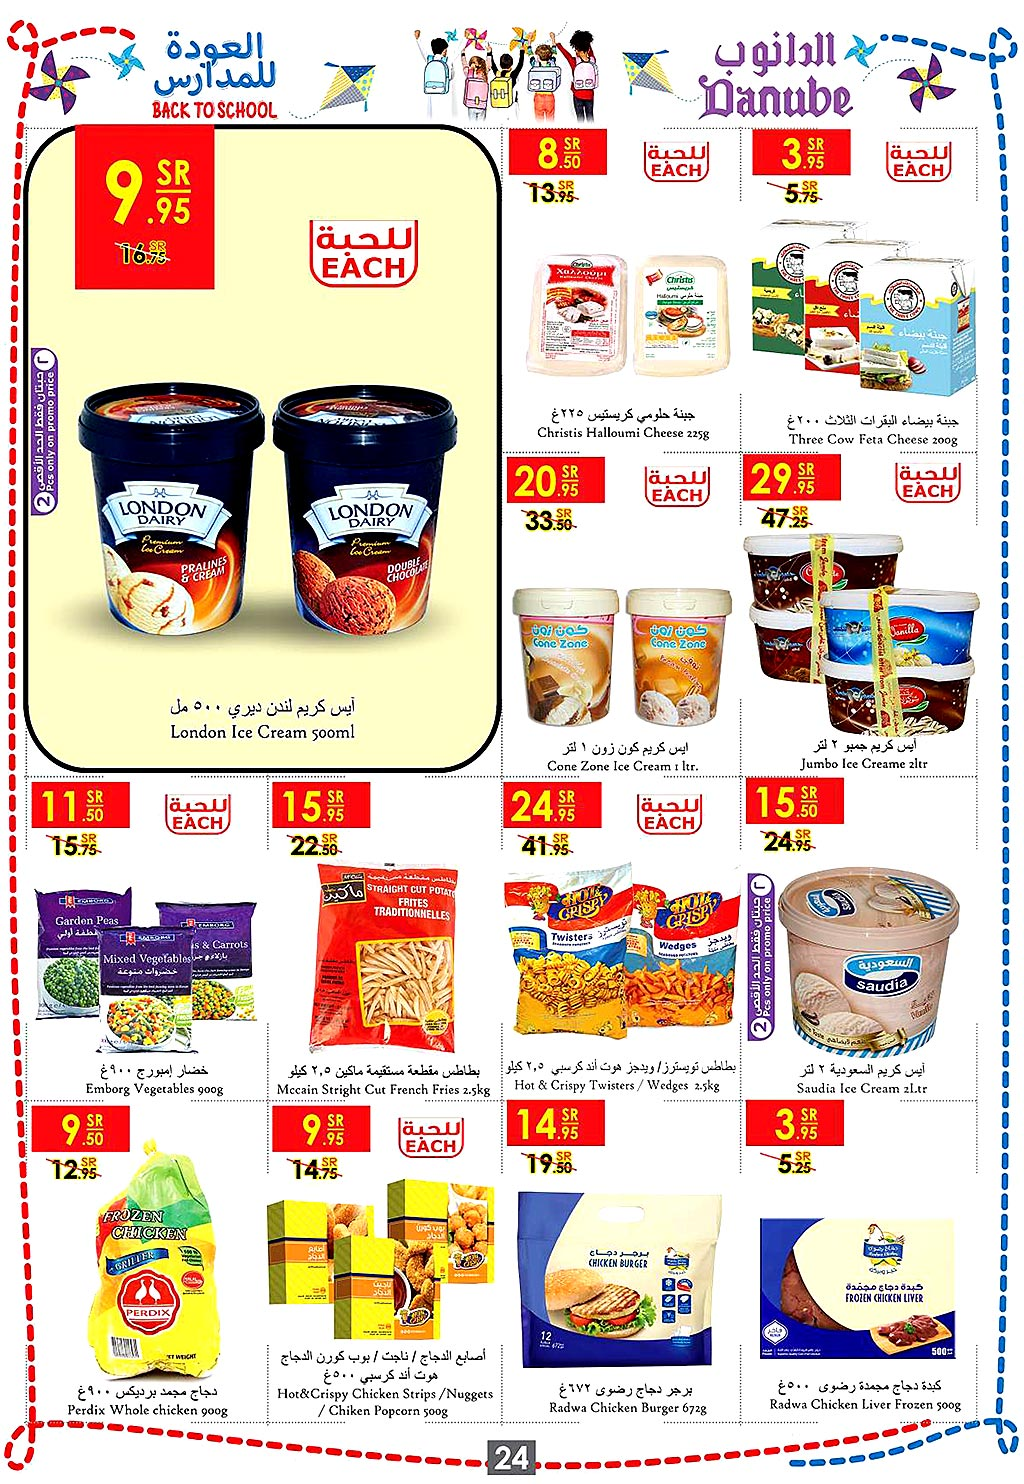 danube offers from 7aug to 22aug 2019 page number 23 عروض الدانوب من 7 أغسطس حتى 22 أغسطس 2019 صفحة رقم 23